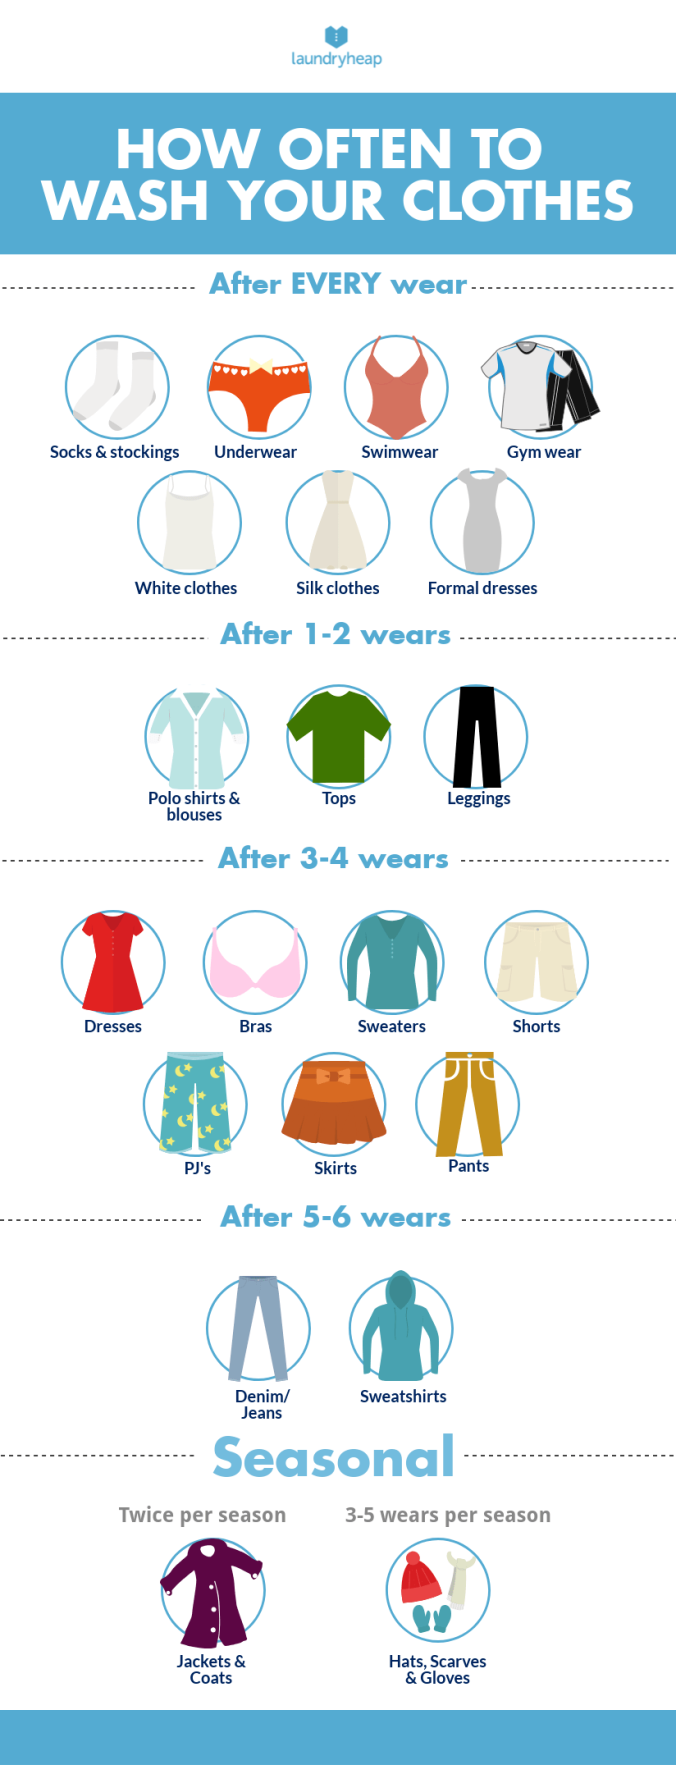 When to wash clothes